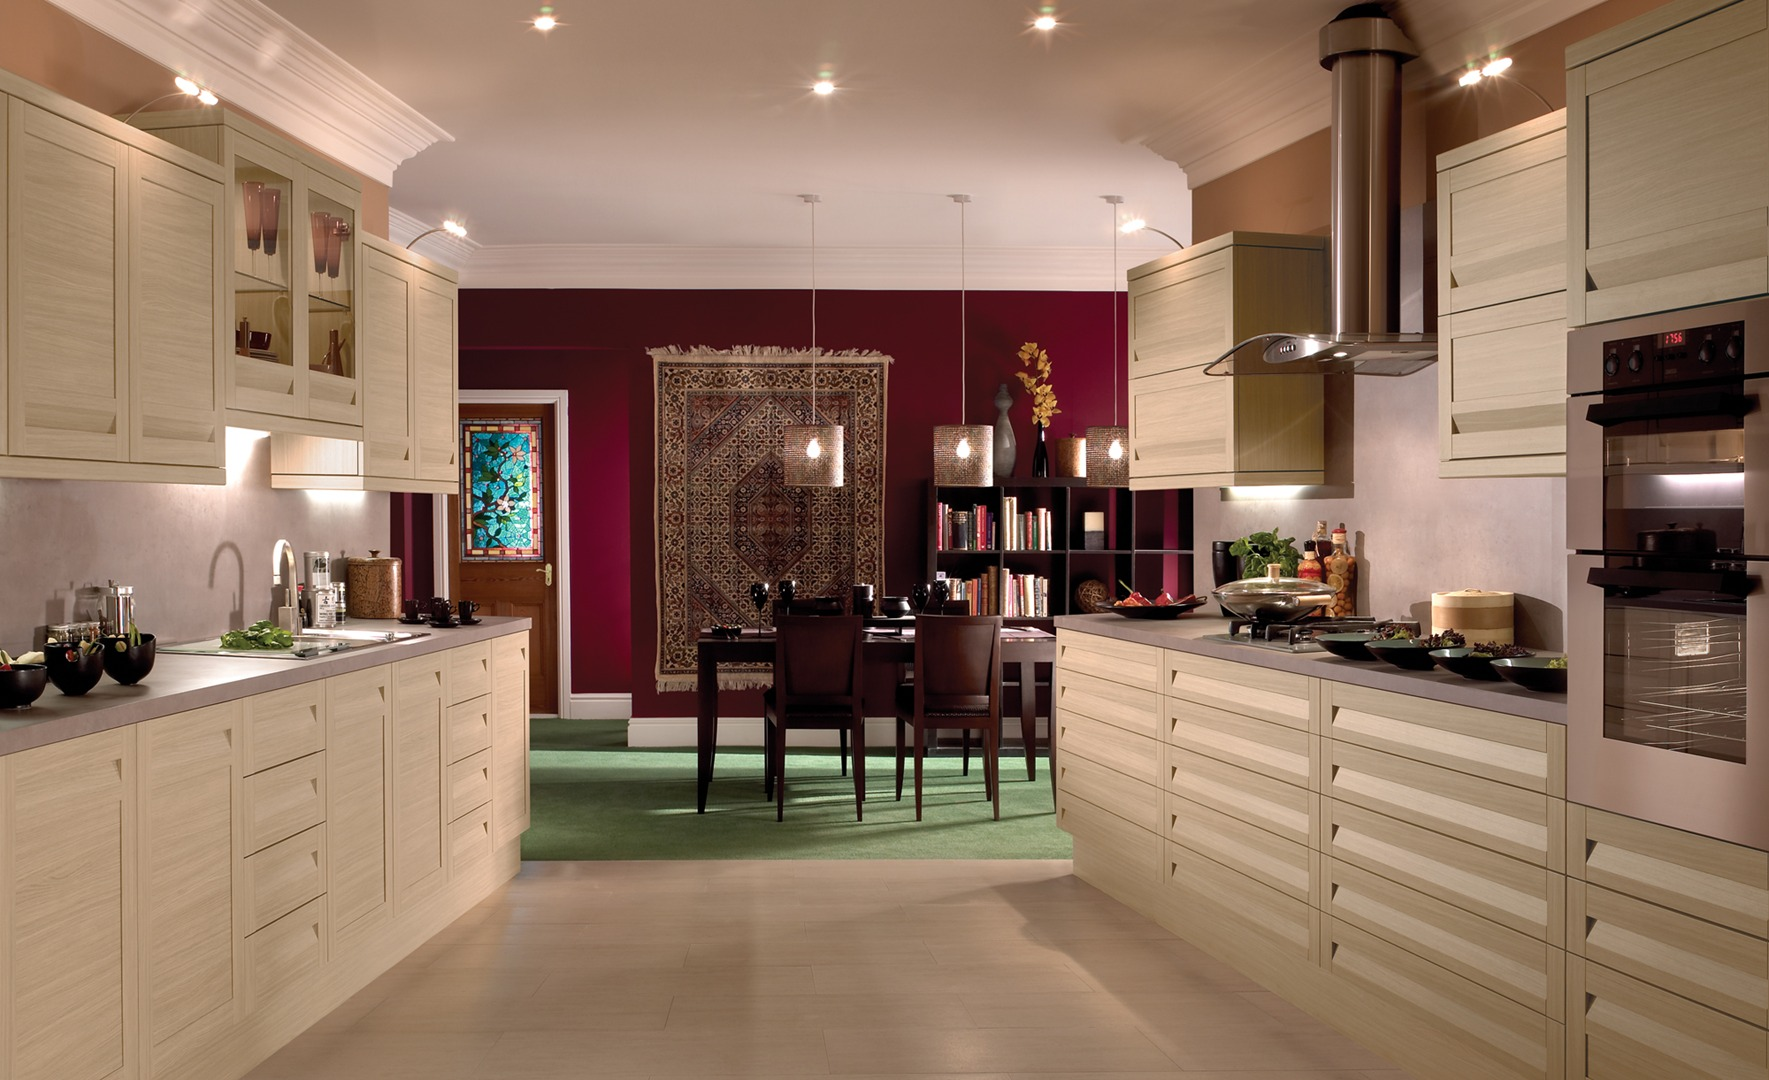 Home Builders Kitchens Essex London Kitchen Designs Design Your Own Kitchen Kitchen